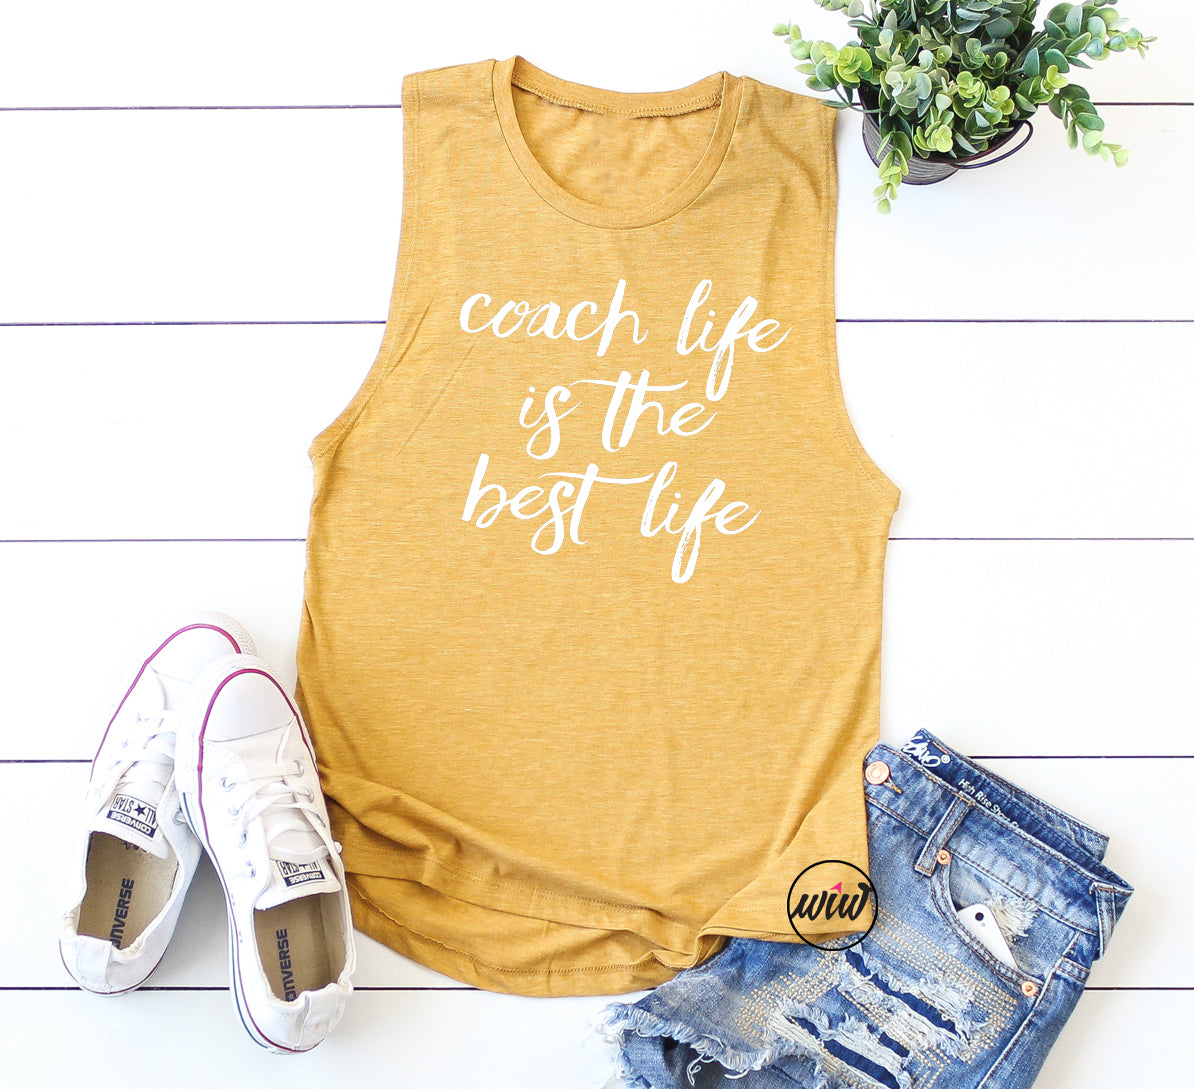 Coach Life Is The Best Life Muscle Tank Top. Coach Shirt. Coach Tank Top. Fitness Coach. Health Coach. Women's Workout. Call me Coach. Summit.